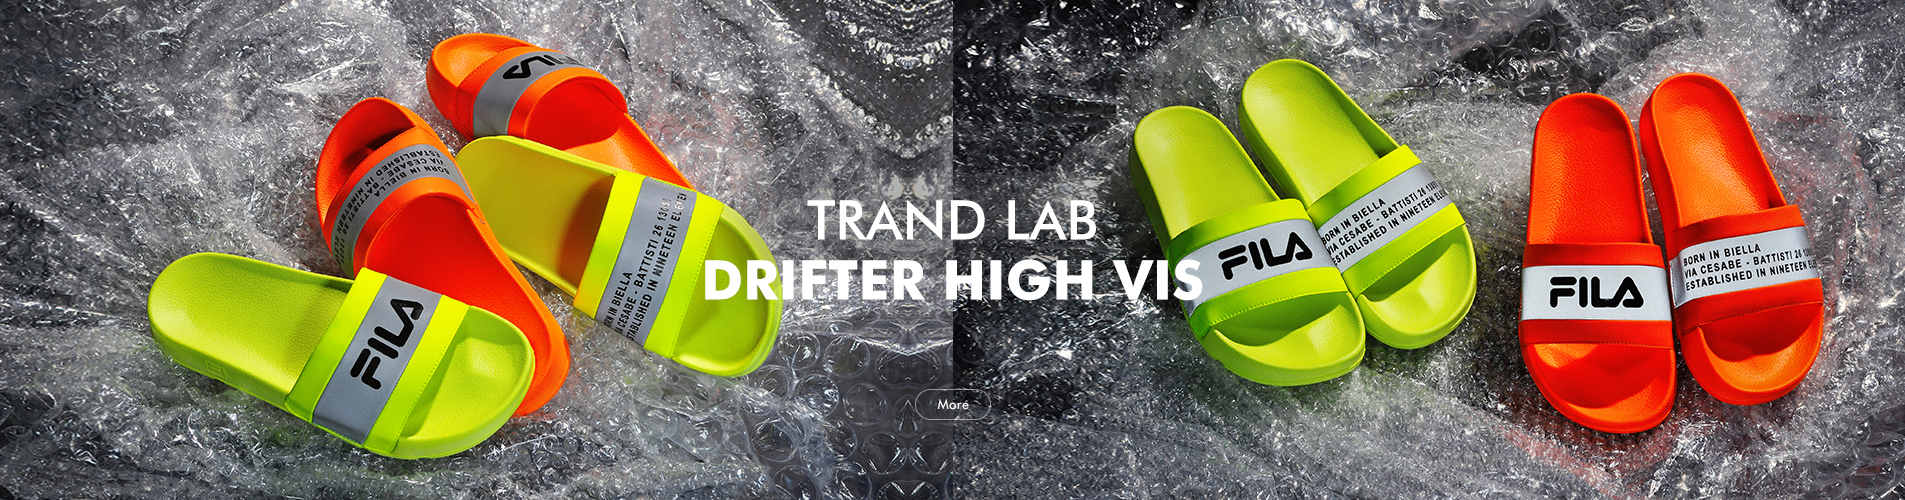 TREND LAB DRIFTER HIGH VIS mobile